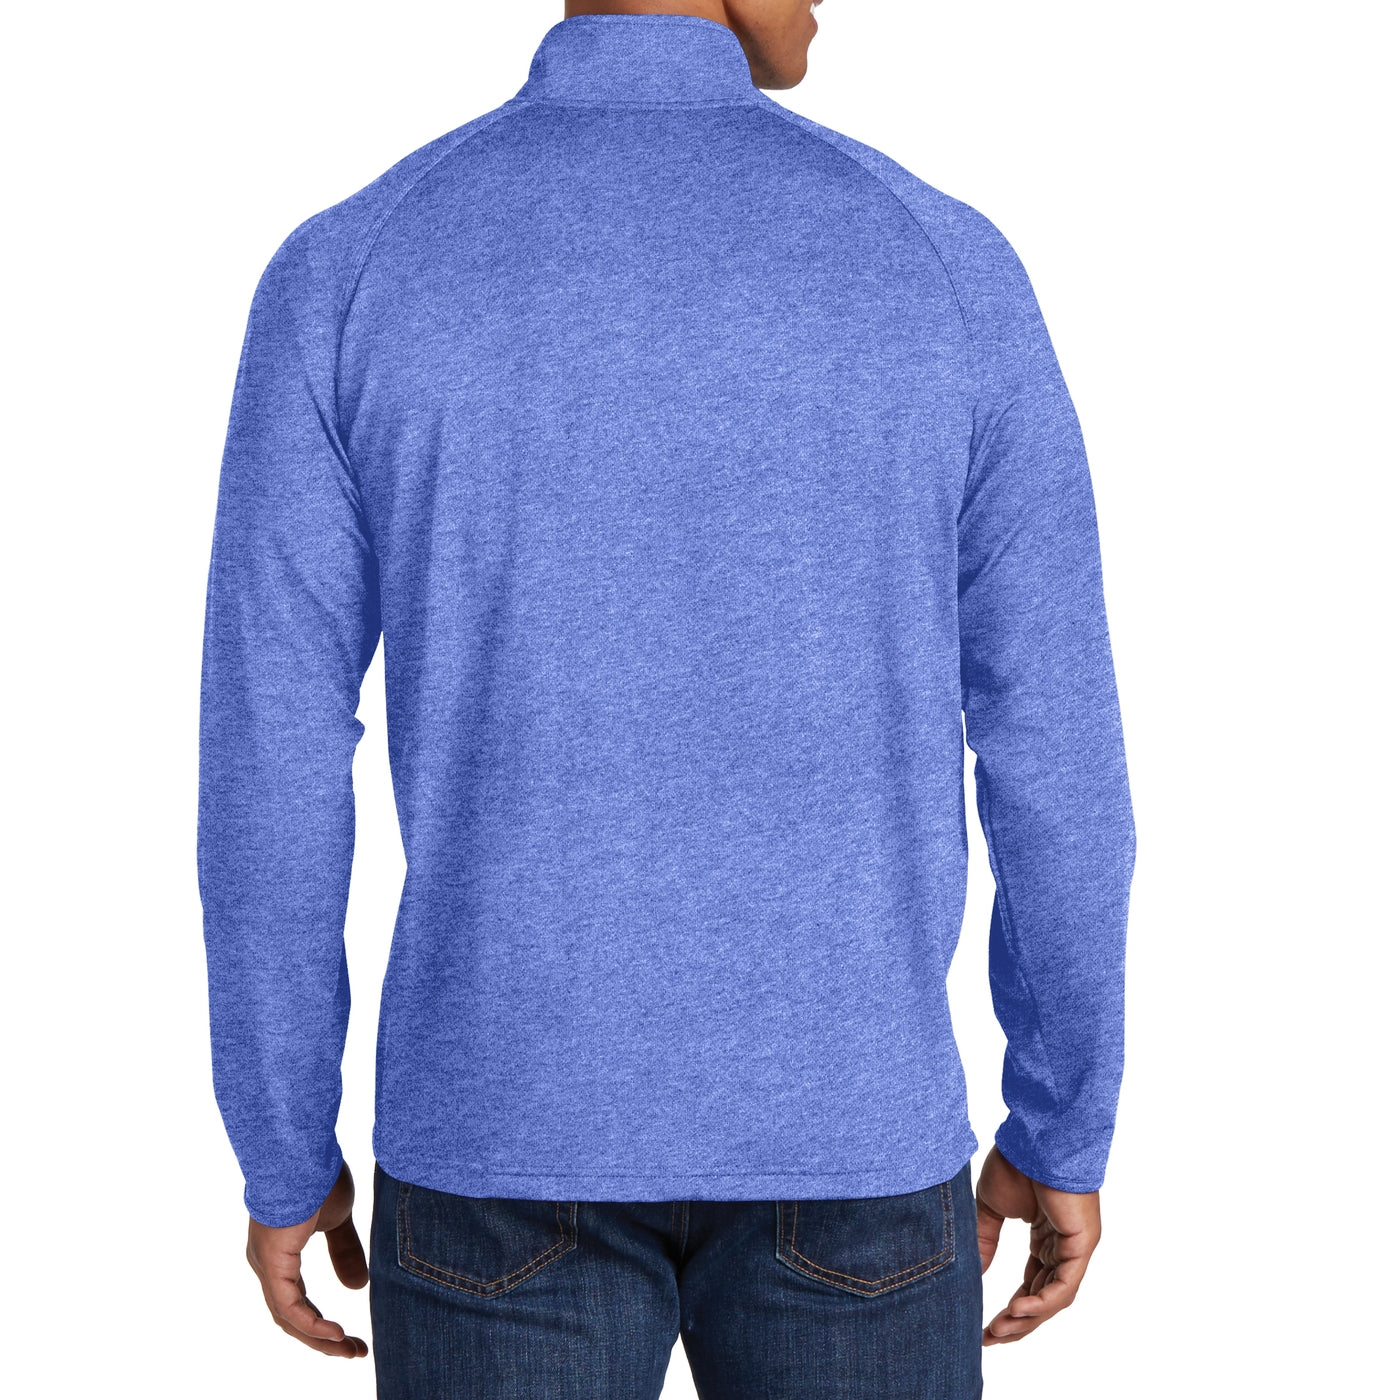 Men's Stretch 1/2 Zip Pullover - True Royal Heather